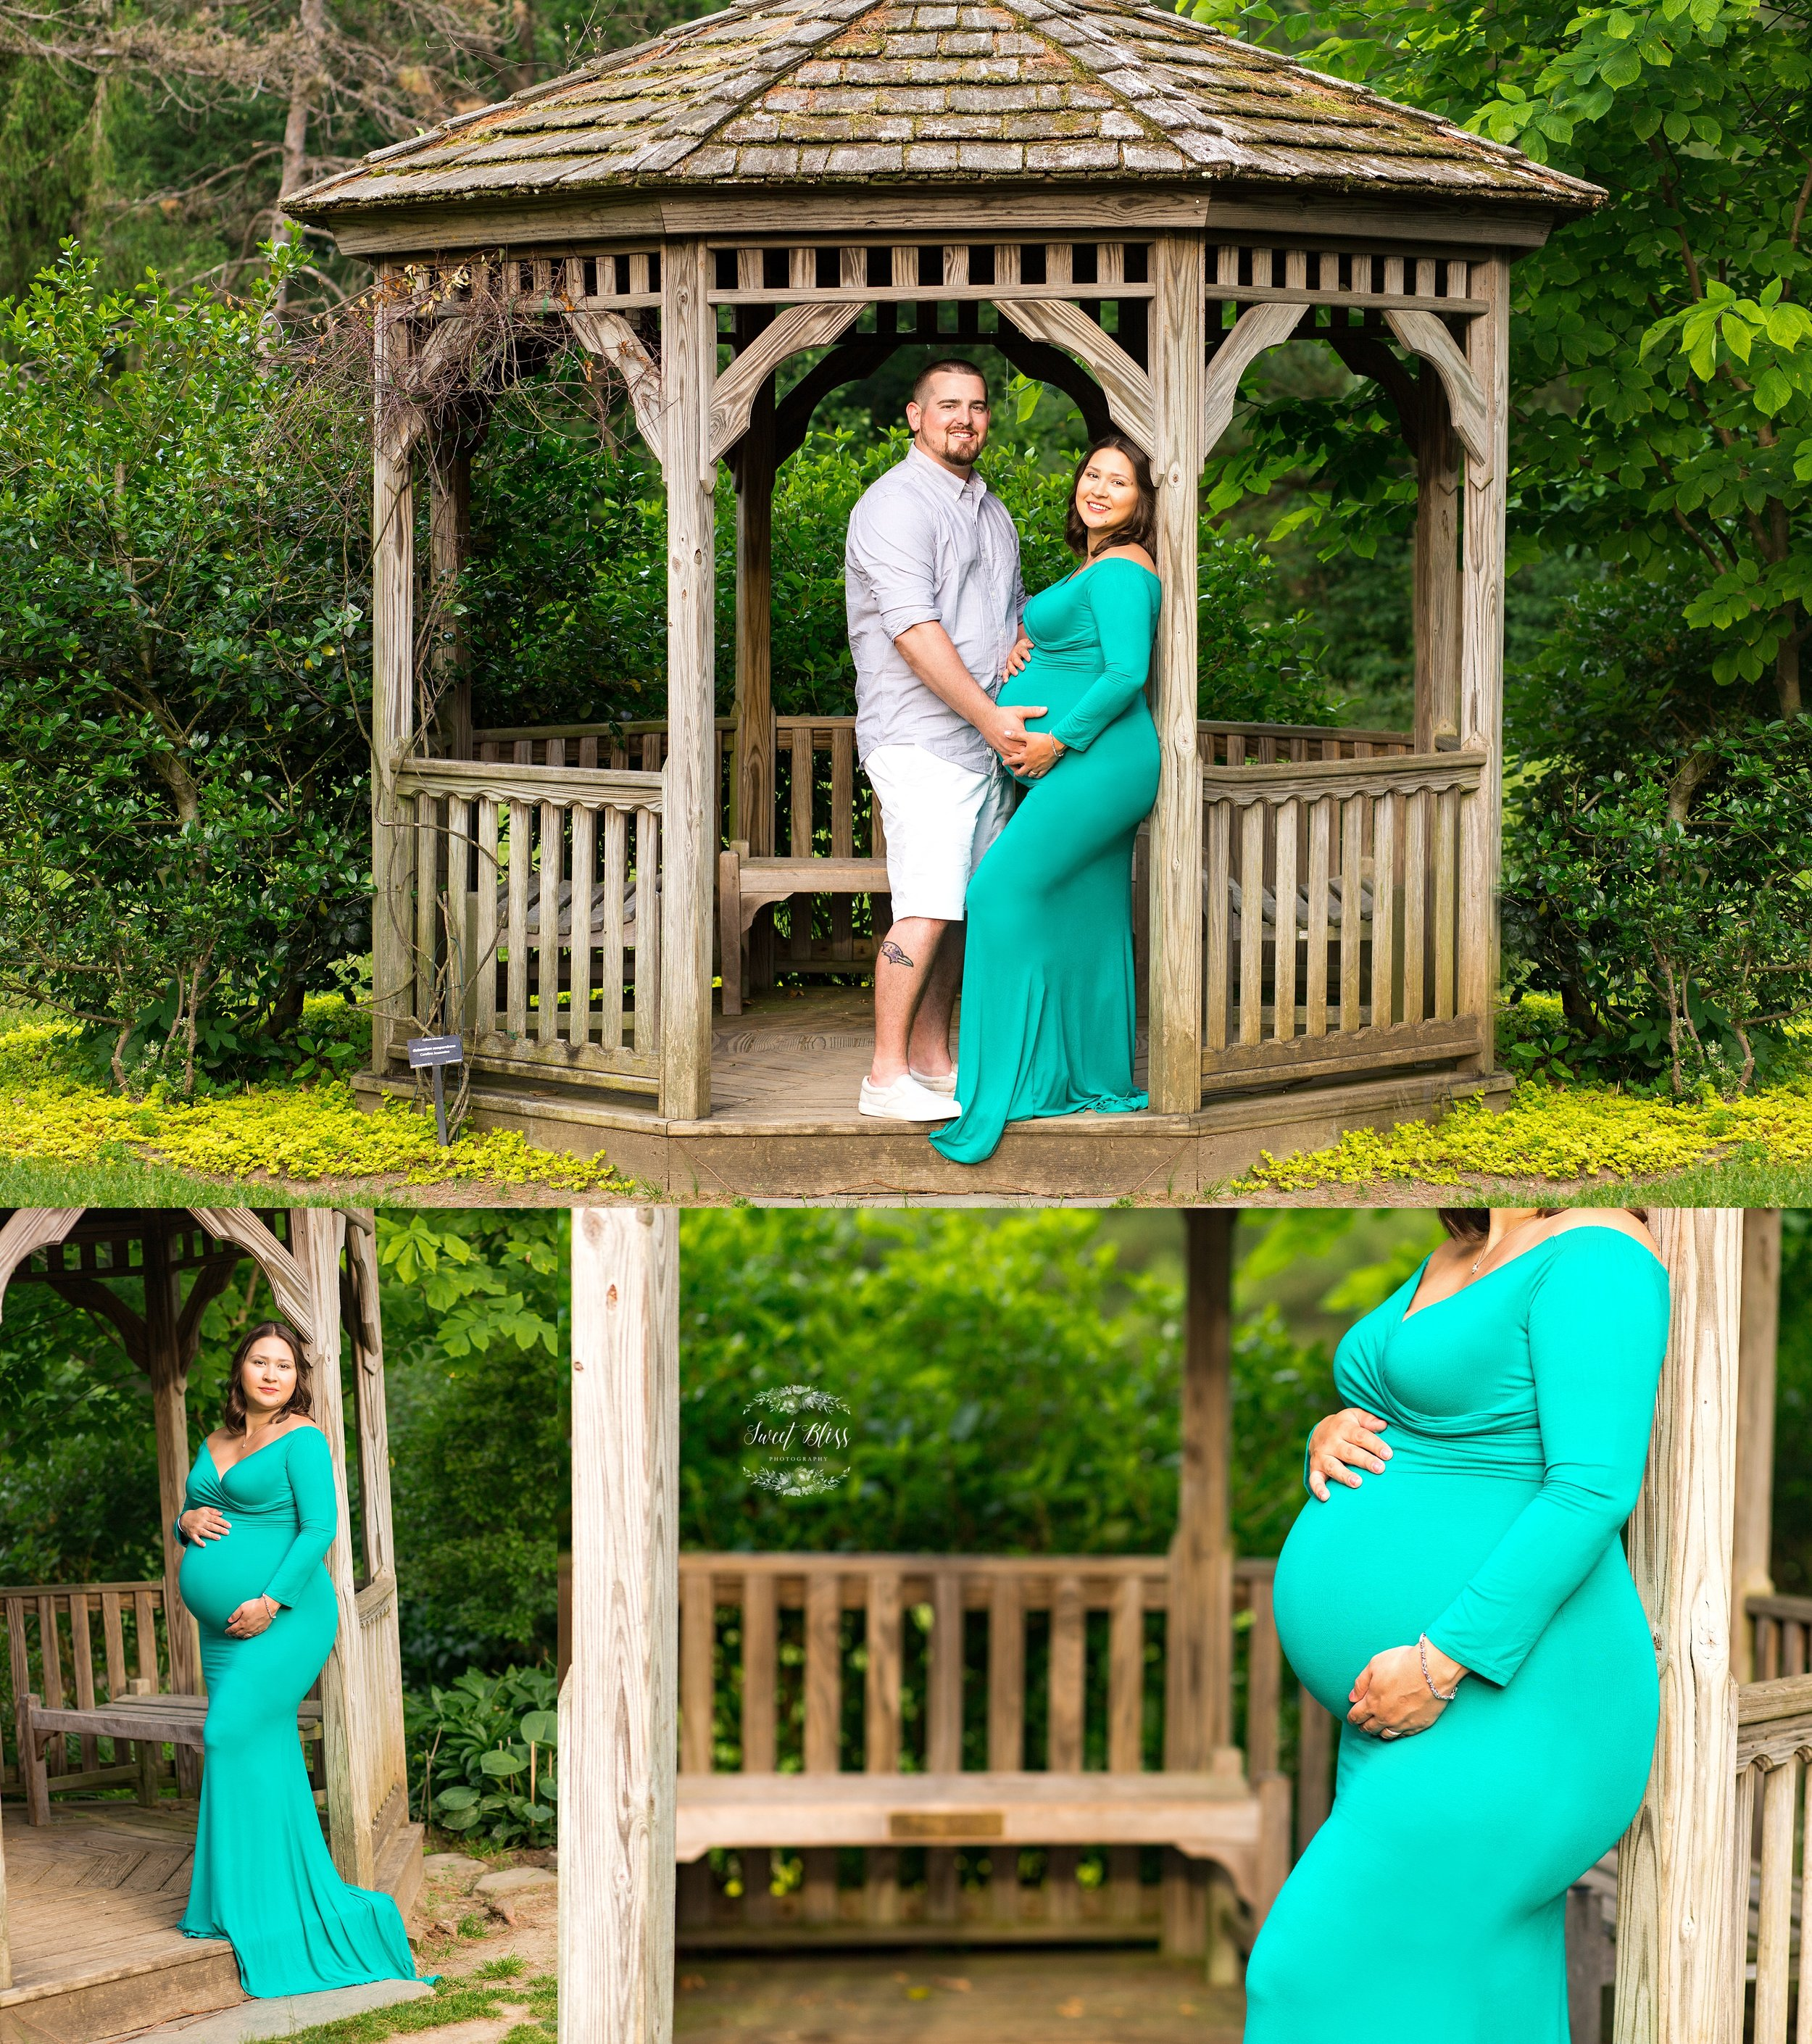 maternitysession_maternityphotographermaryland-28.jpg